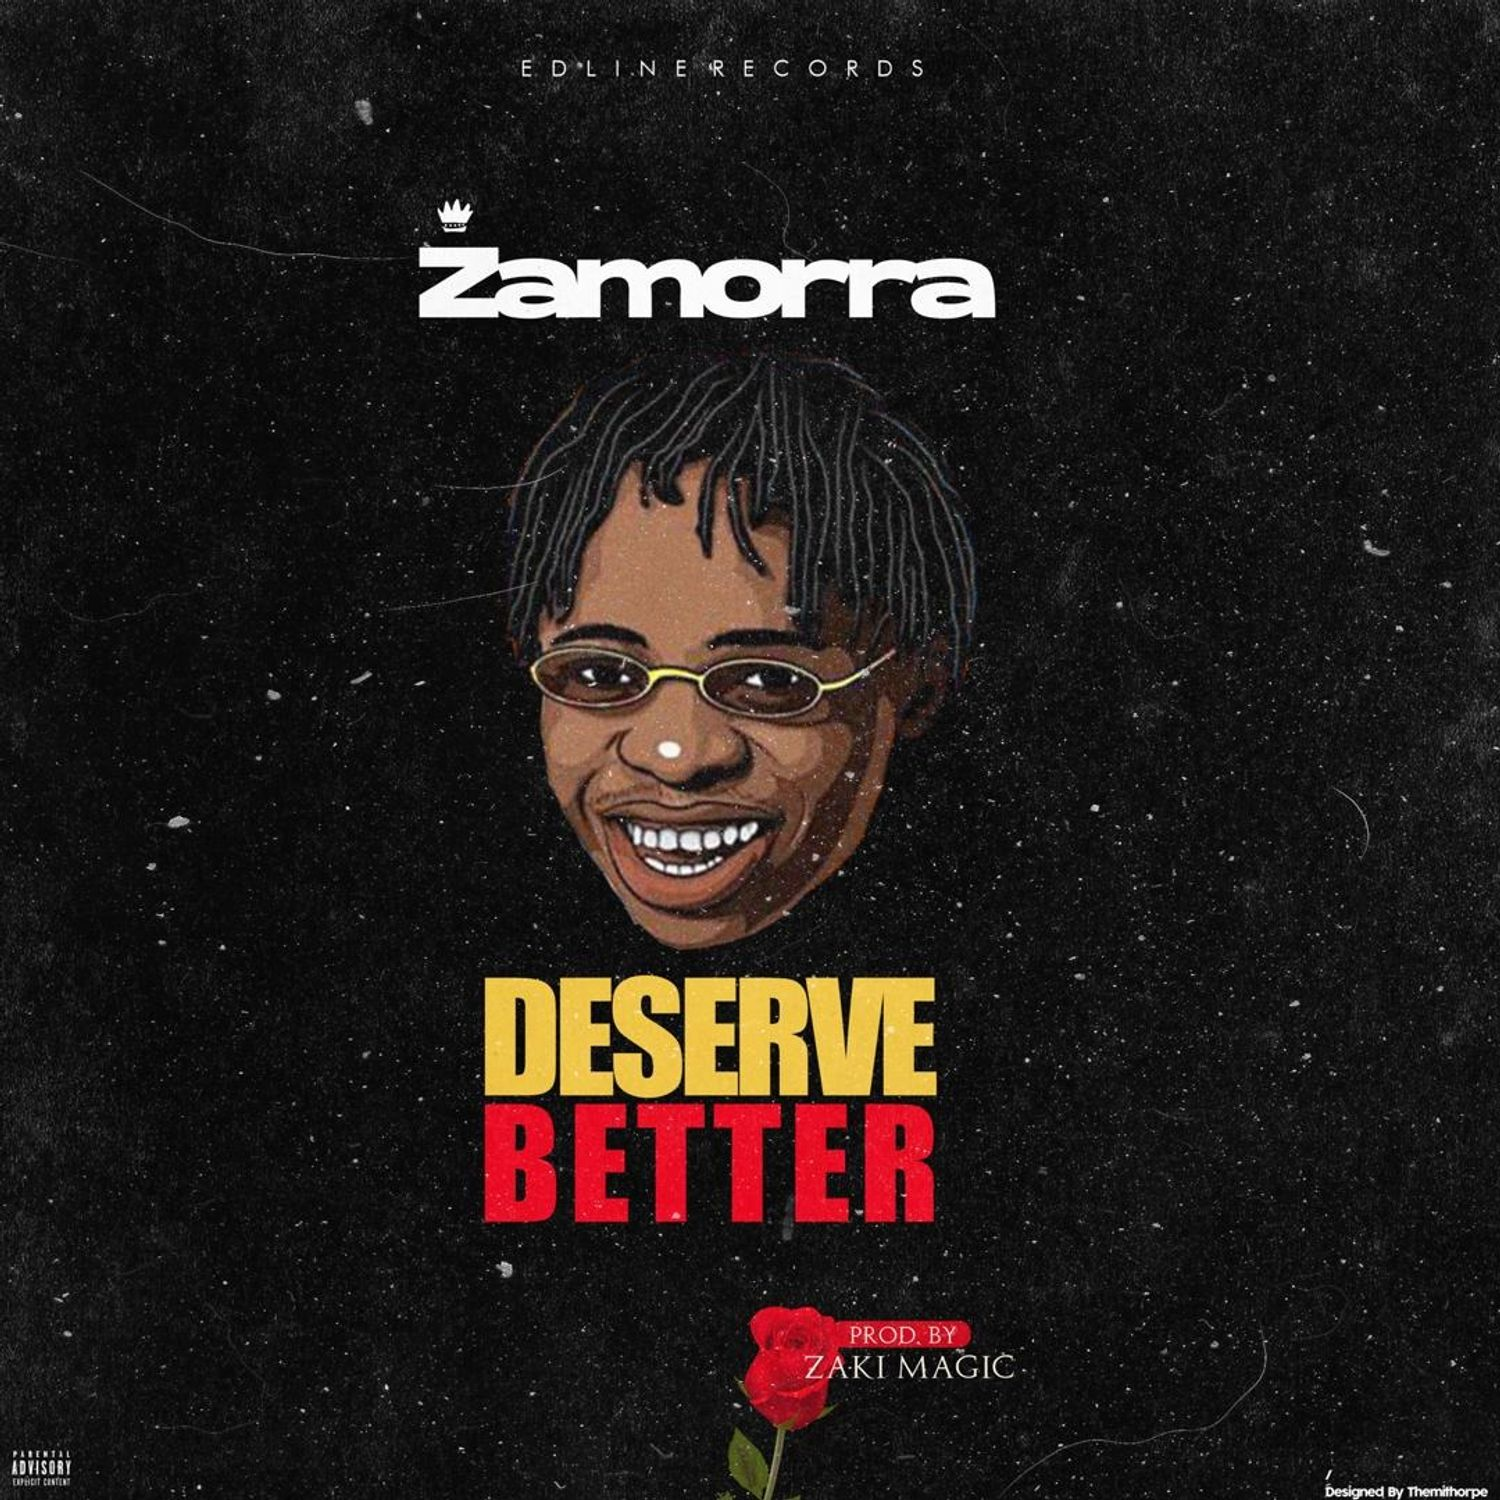 Zamorra - Deserve Better